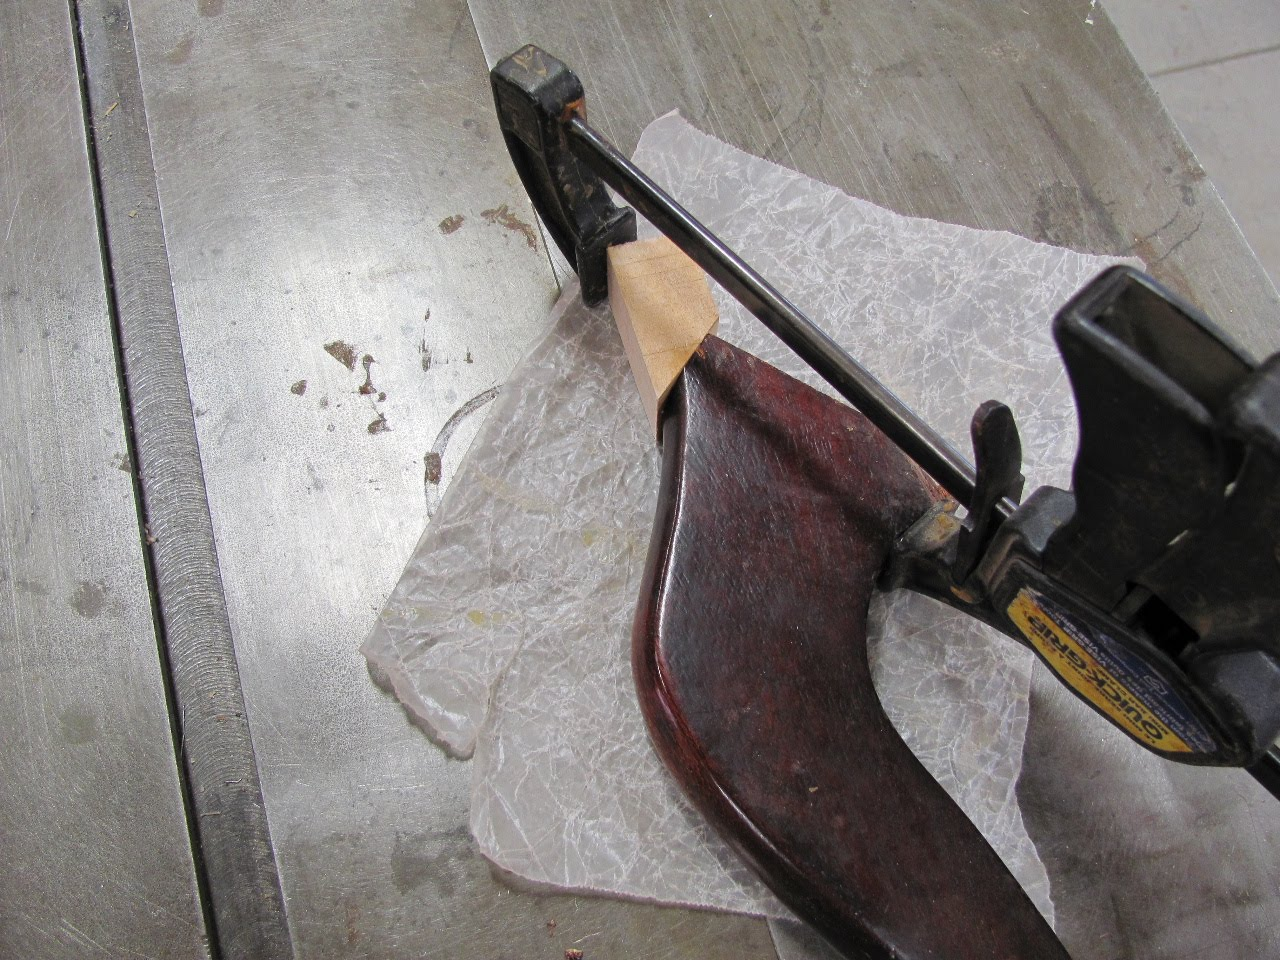 Thomas Nelson Furniture Restoration: Tilt-top Table Leg Repair